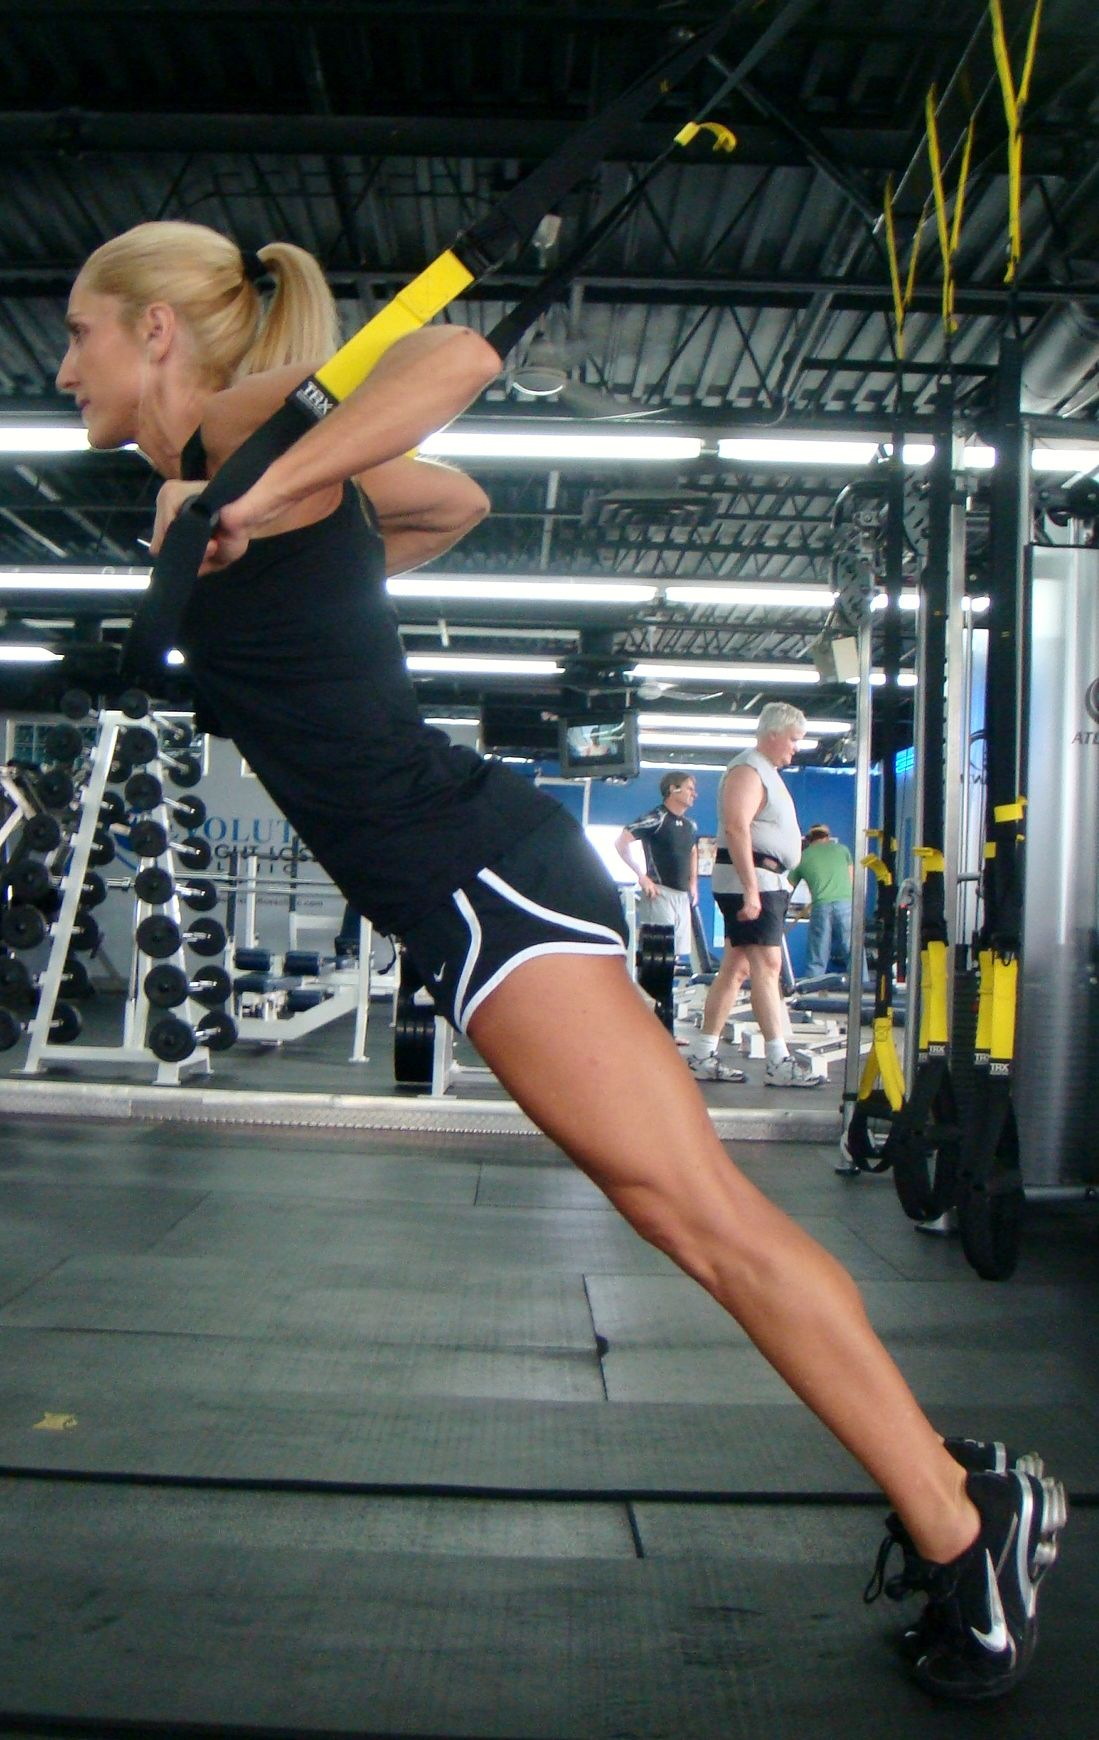 trx full body workout~metabolic blast jenn fit blog  full body circuit jenn fit blog